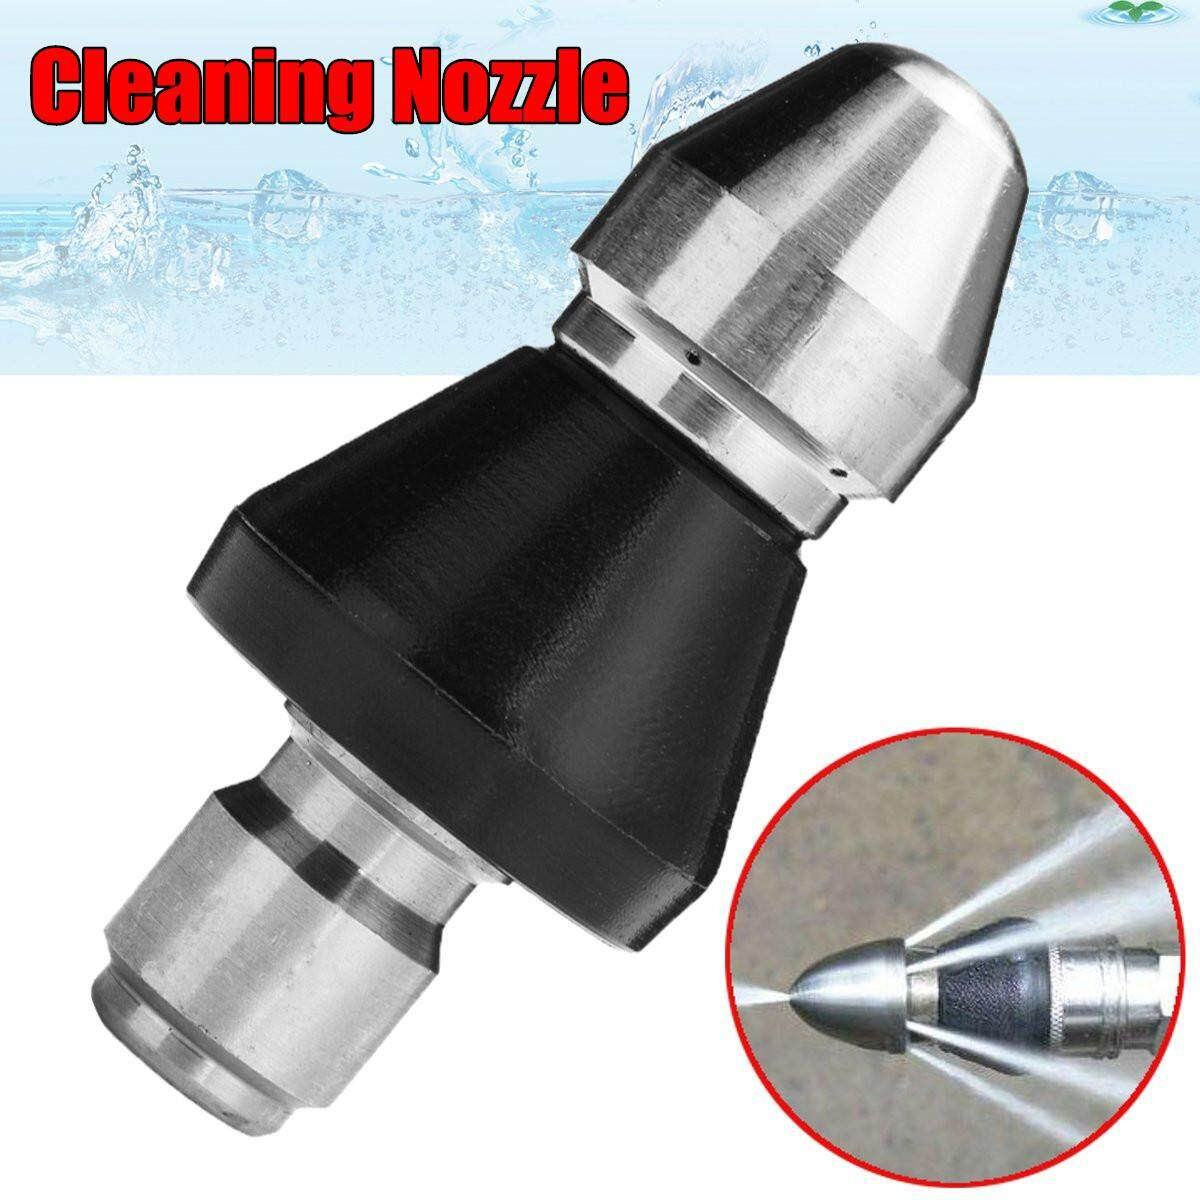 Pressure Washer Drain / Sewer Cleaning Jetter Nozzle